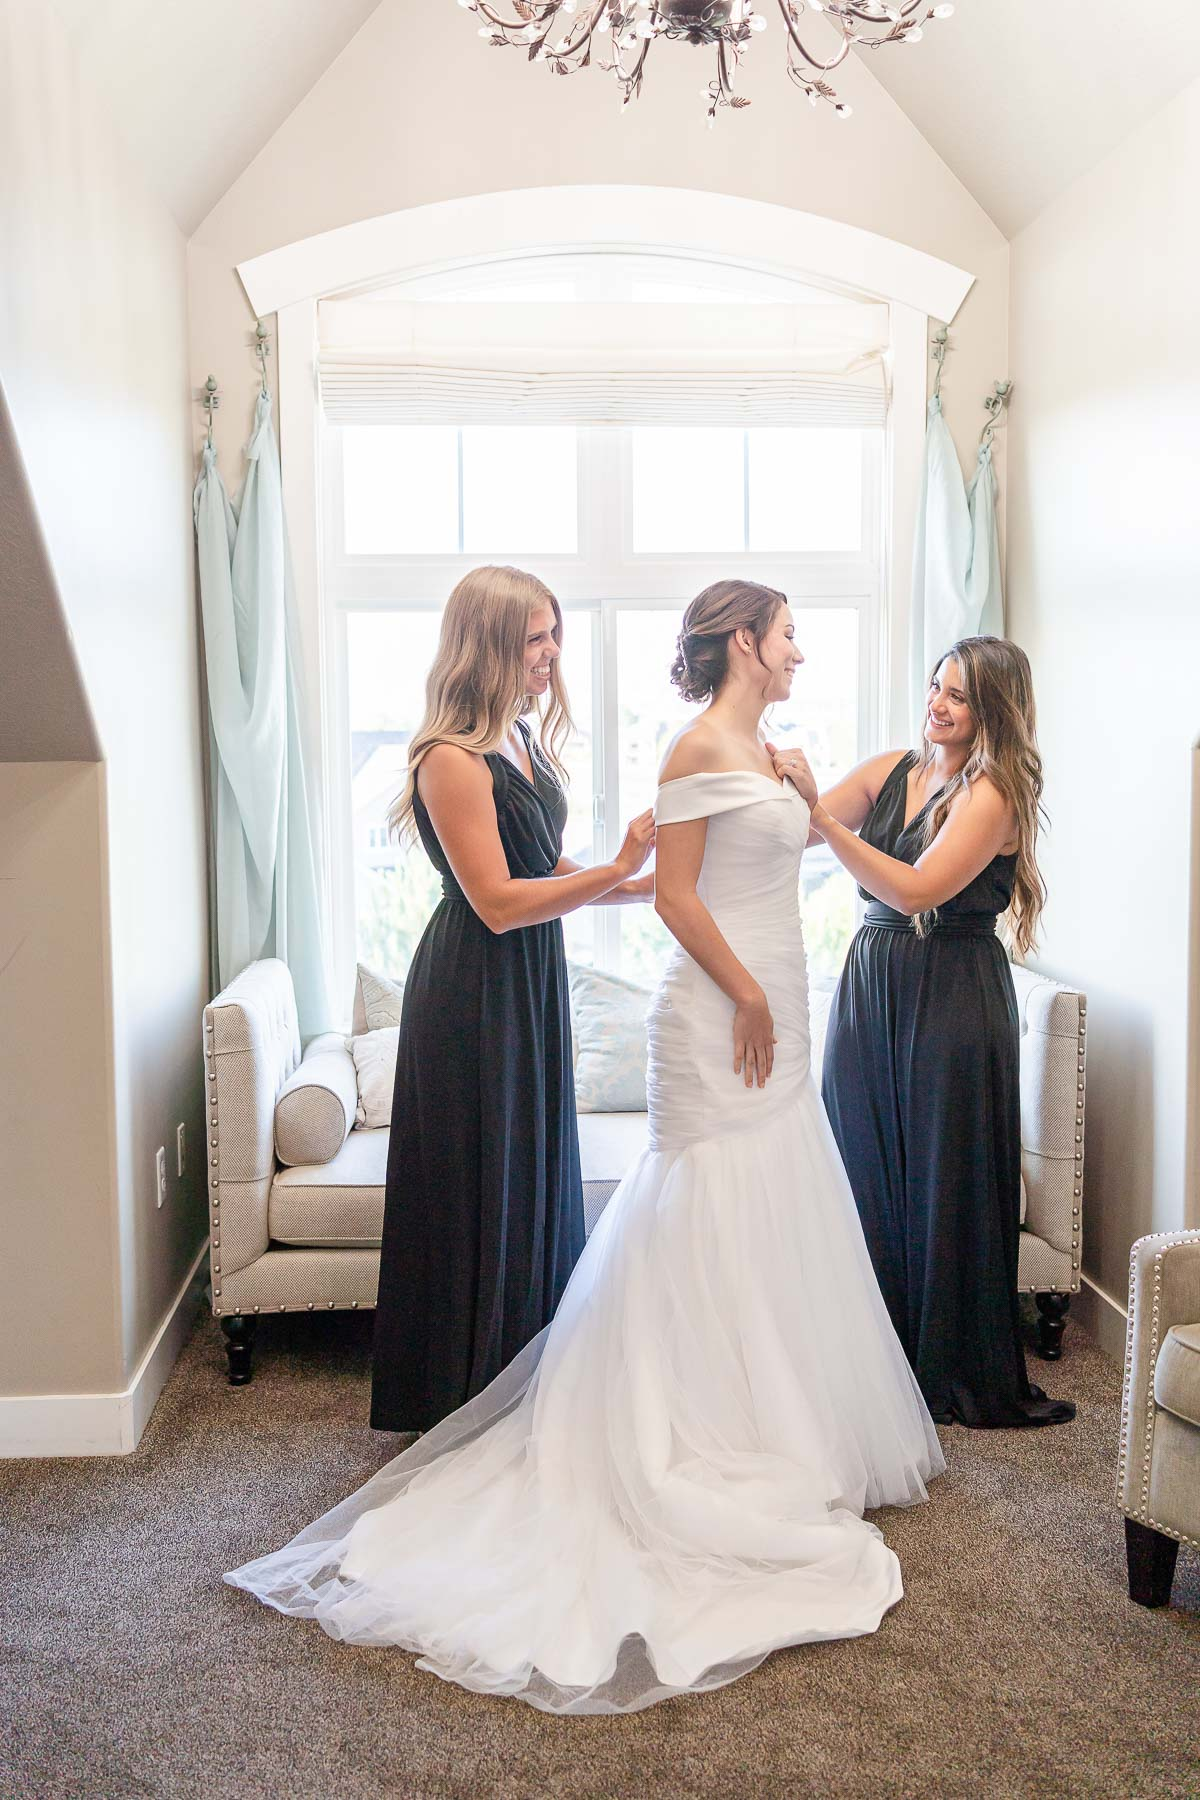 Bride with bridesmaids in black dresses getting ready